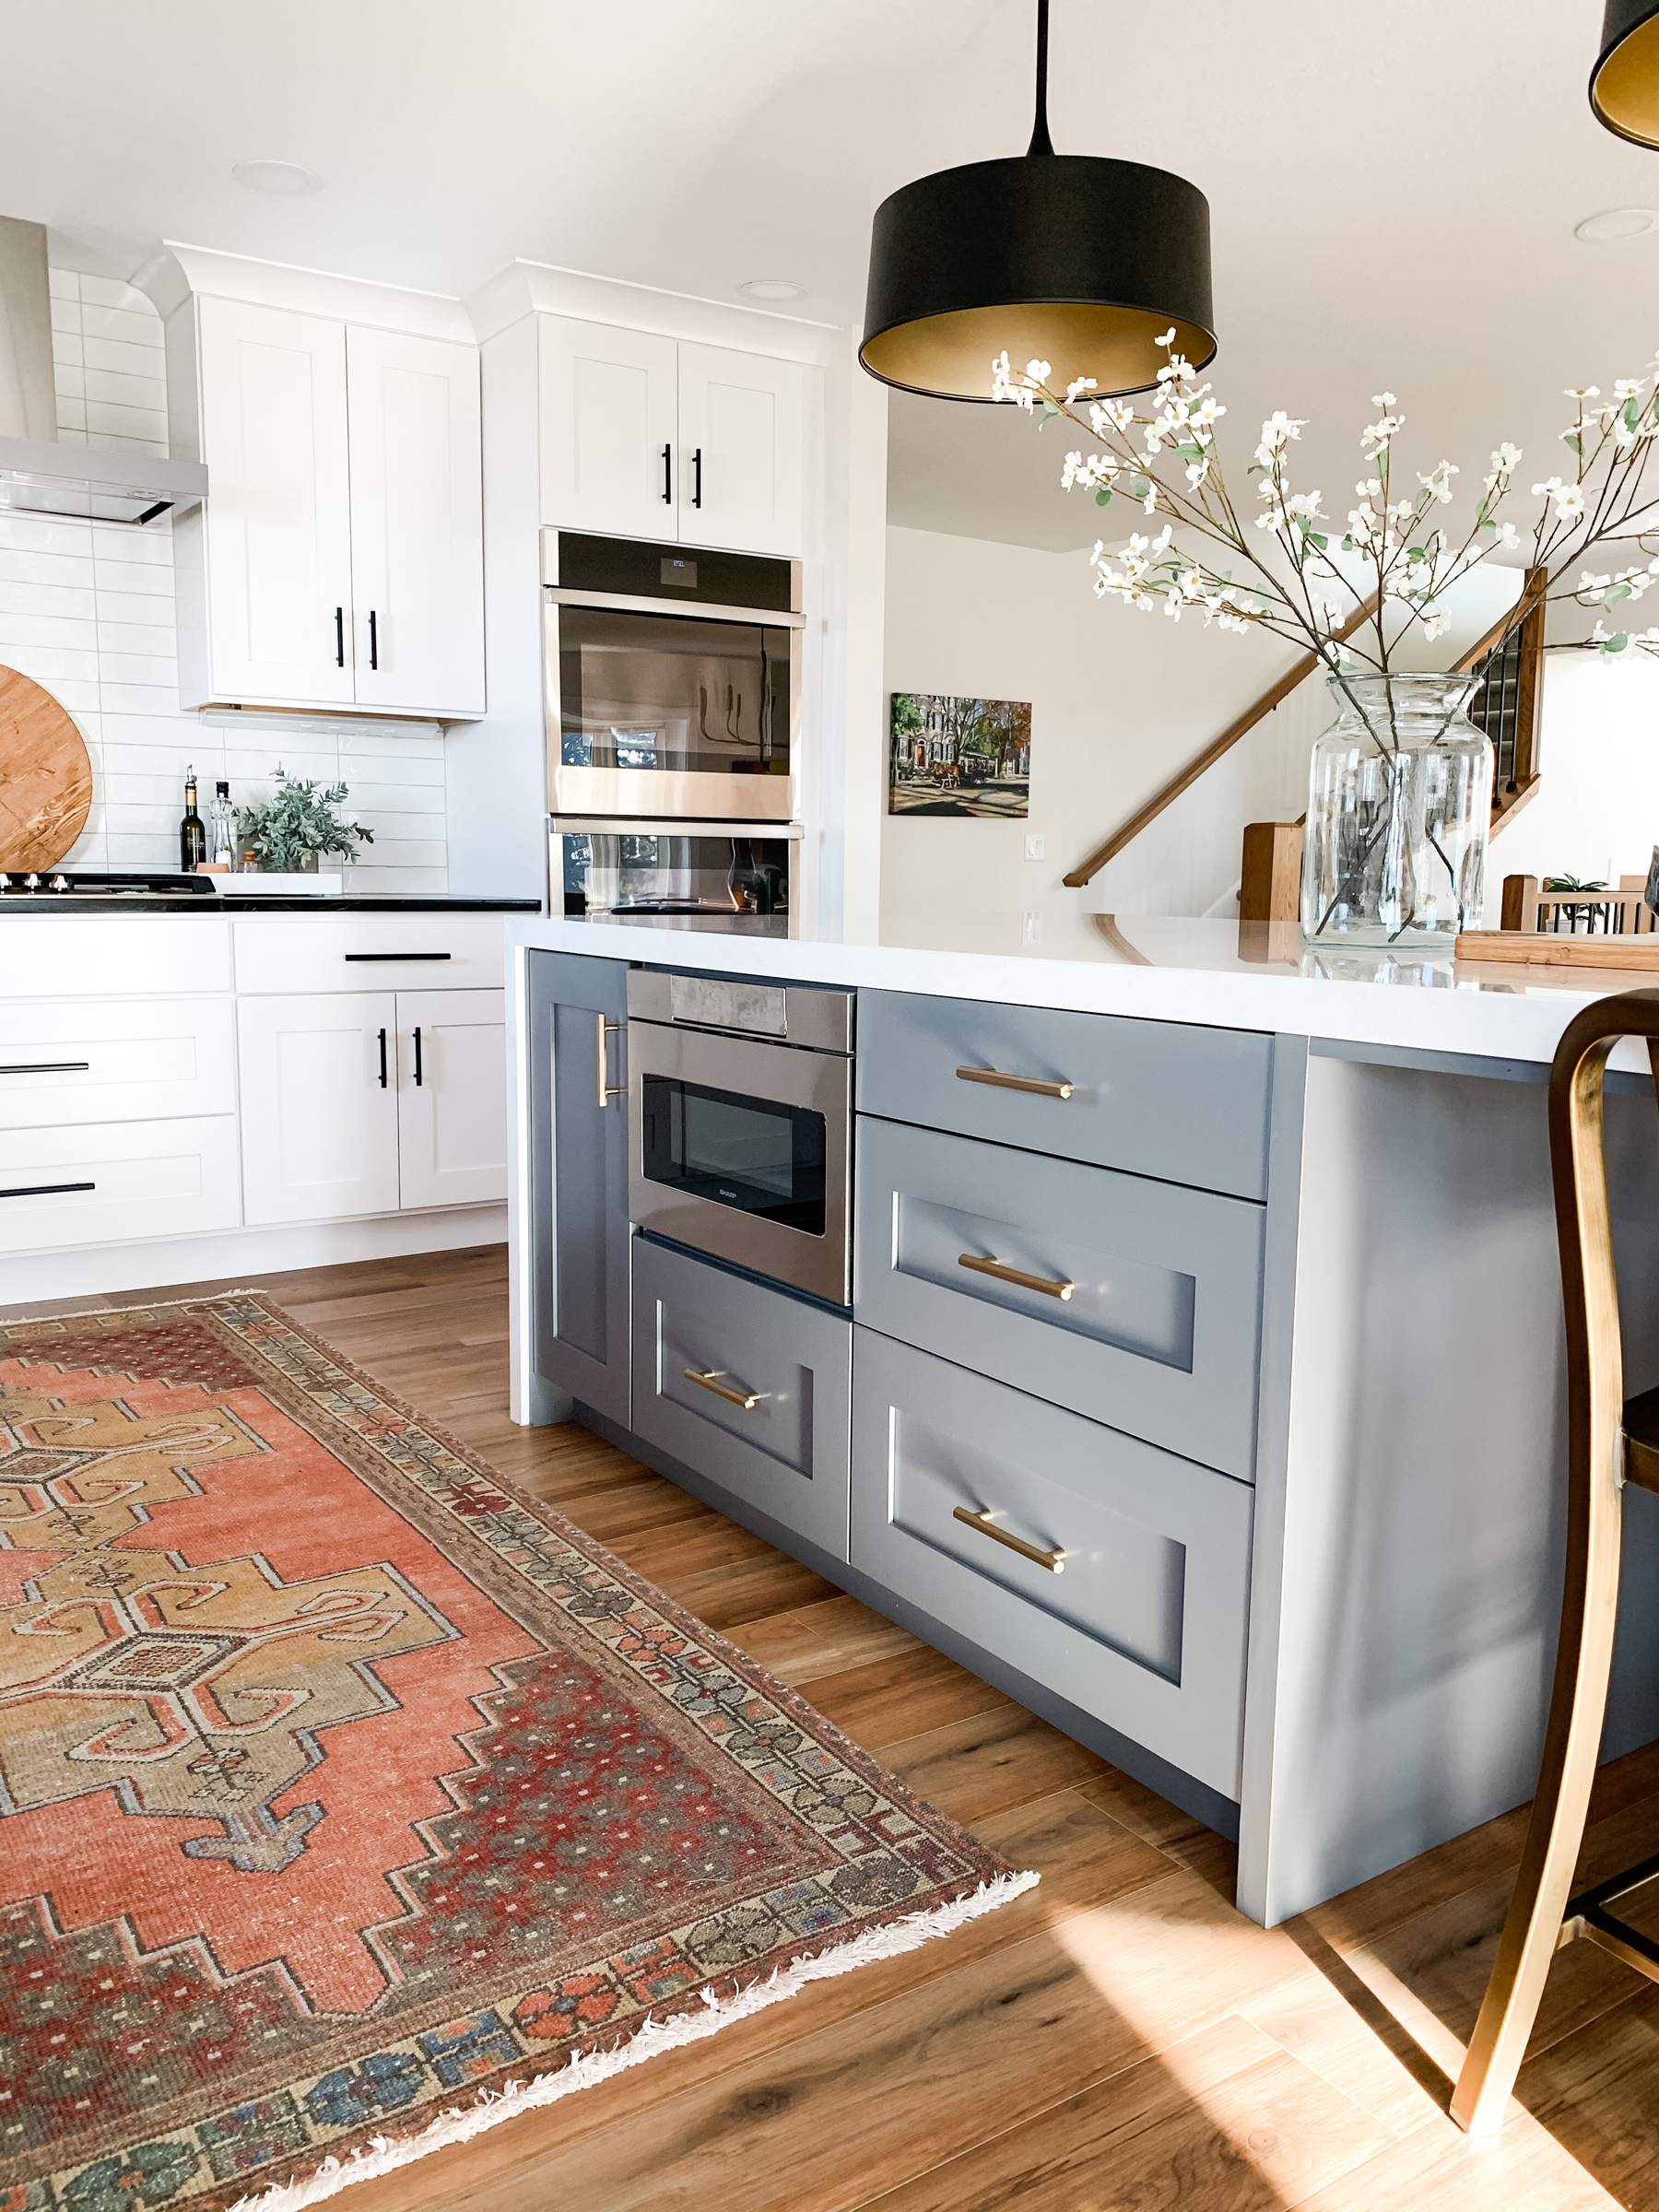 Buying Cabinets, Cabinet Basics, Cabinet Care, Cabinet Cleaning, Cabinetry 101, Cabinets 101, colors, Company Culture, Company Events, contemporary, custom storage, Custom vs Local Shop, design, Design Ideas, Finish Trends, Giving Back, Home Office, KBIS 2020, Laundry Rooms, Mellowing, mid century, mid-century modern, midcentury modern, mudrooms, Paint, Paint Colors, Painted Cabinets, pet ideas, range hood, sample door, Small Bathrooms, Small Kitchen Ideas, Small Kitchens, Storage Solutions, transitional, trends, vent hood